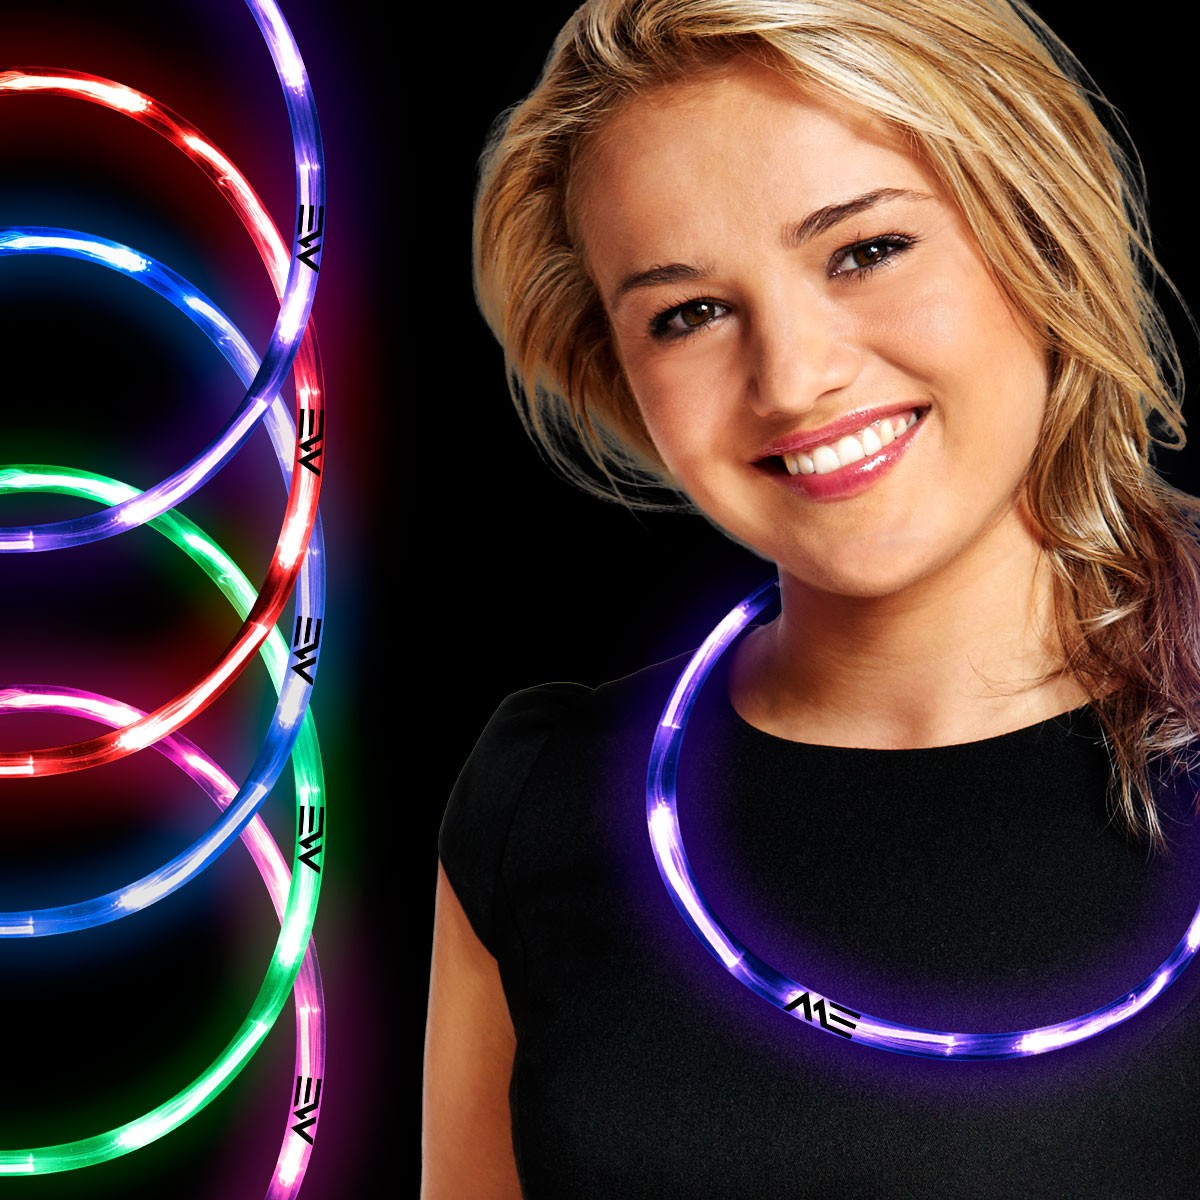 Neon LED Necklaces